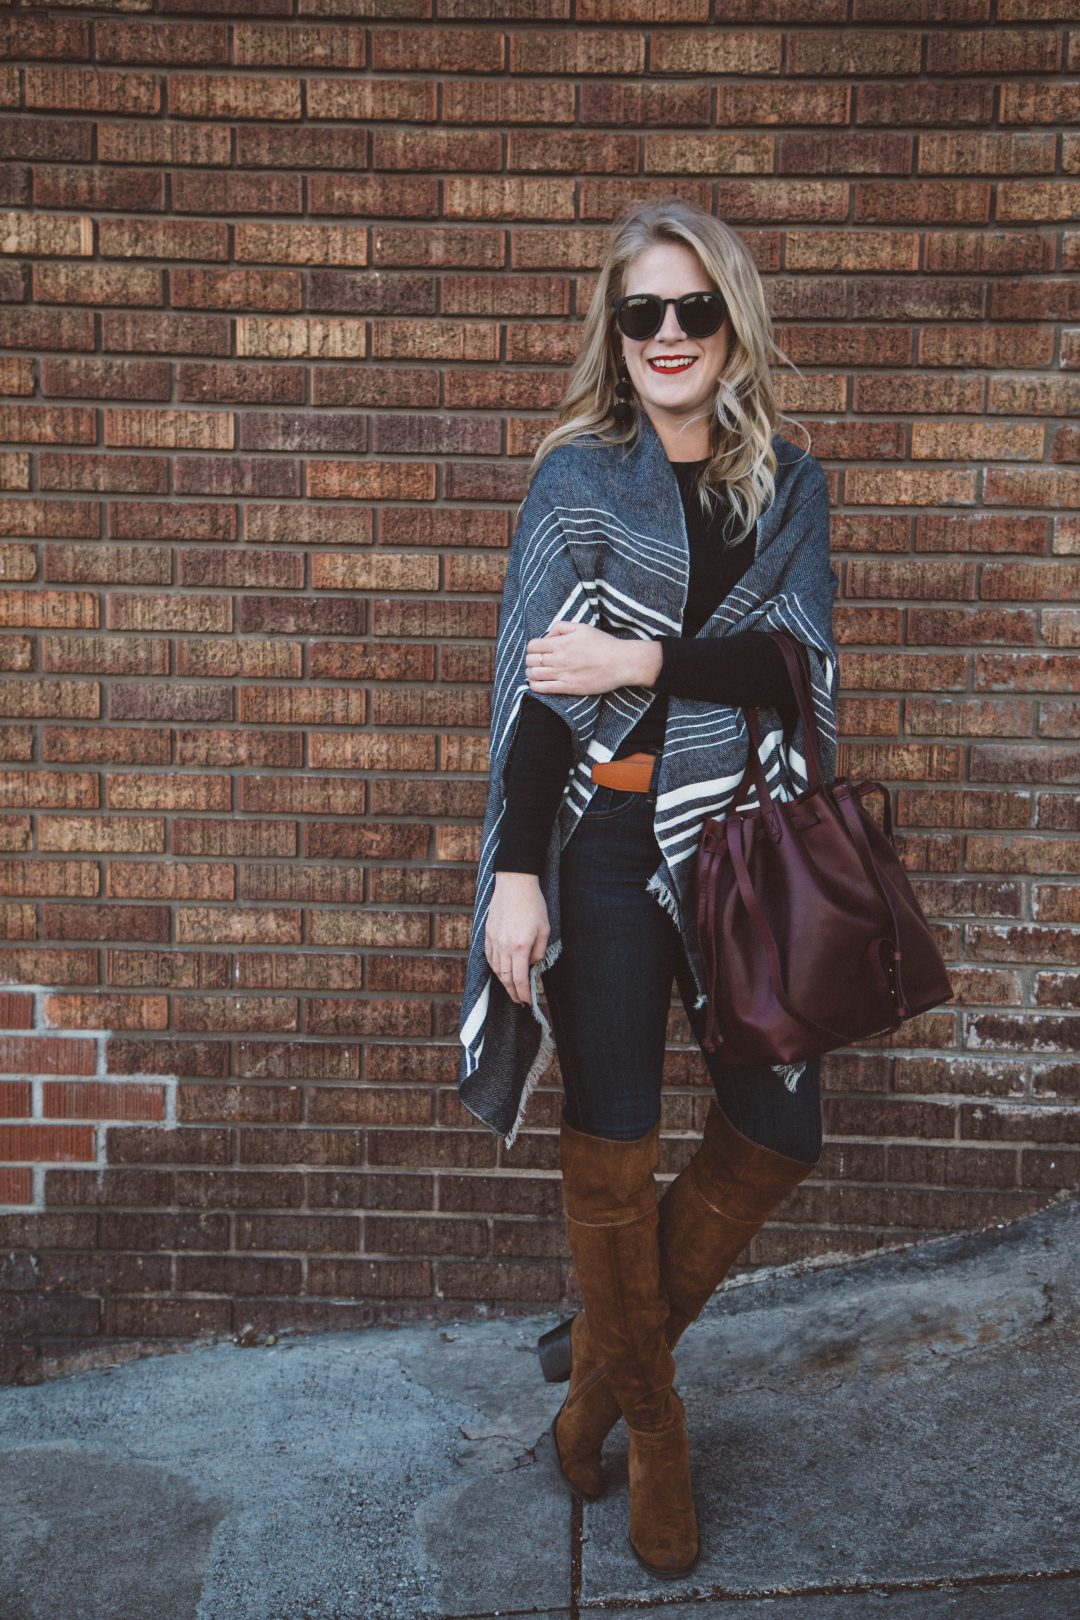 J. Crew Wrap with Steve Madden over the knee boots and a Madewell bucket bag.